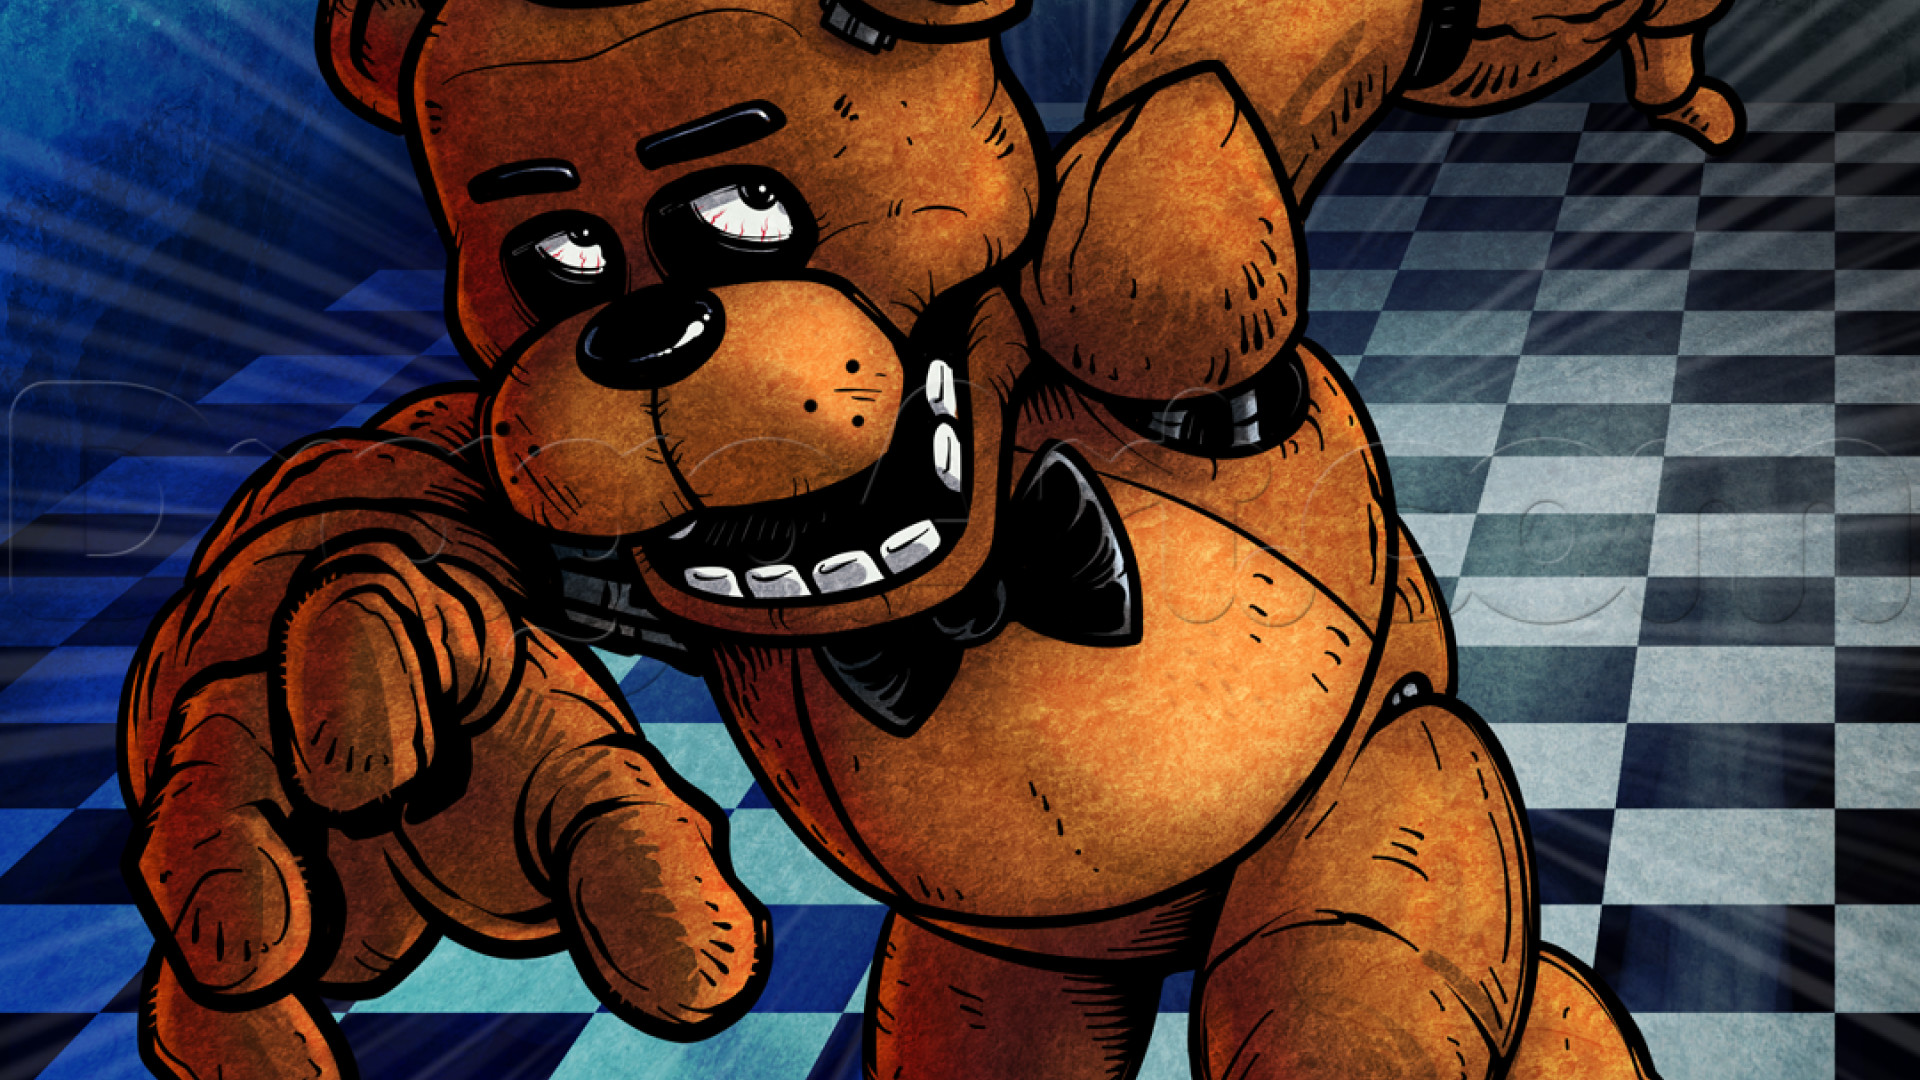 Five nights at video games animals stuffed animal freddy fazbear wallpaper  the best high quality free download.